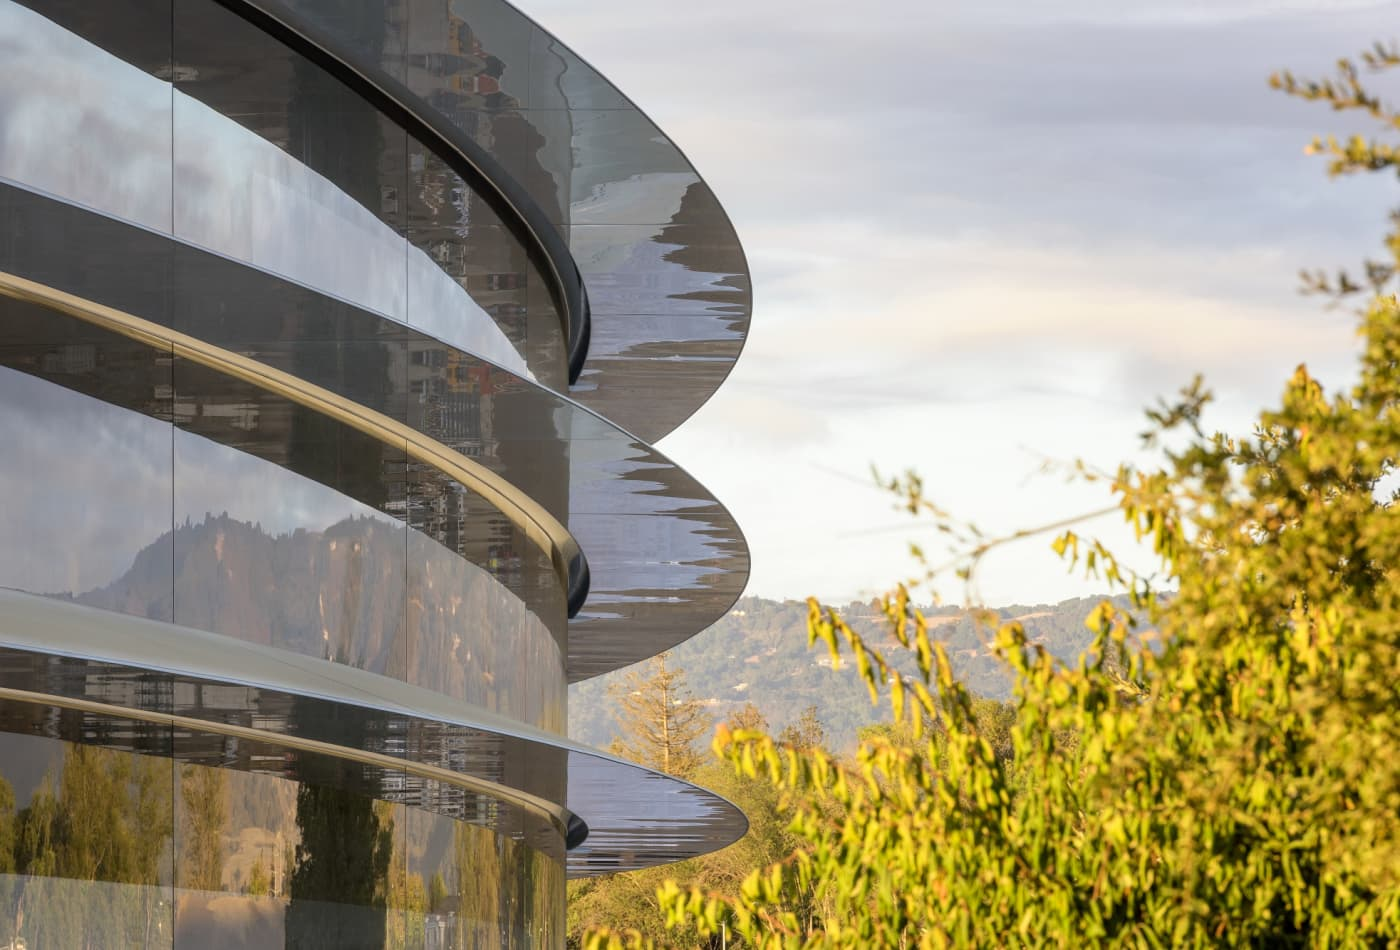 Sforum - Latest technology information page 104702467-Apple_Park_building_trees Apple Park is one of the most expensive buildings in the world when it reaches a value of up to $ 4.17 billion.